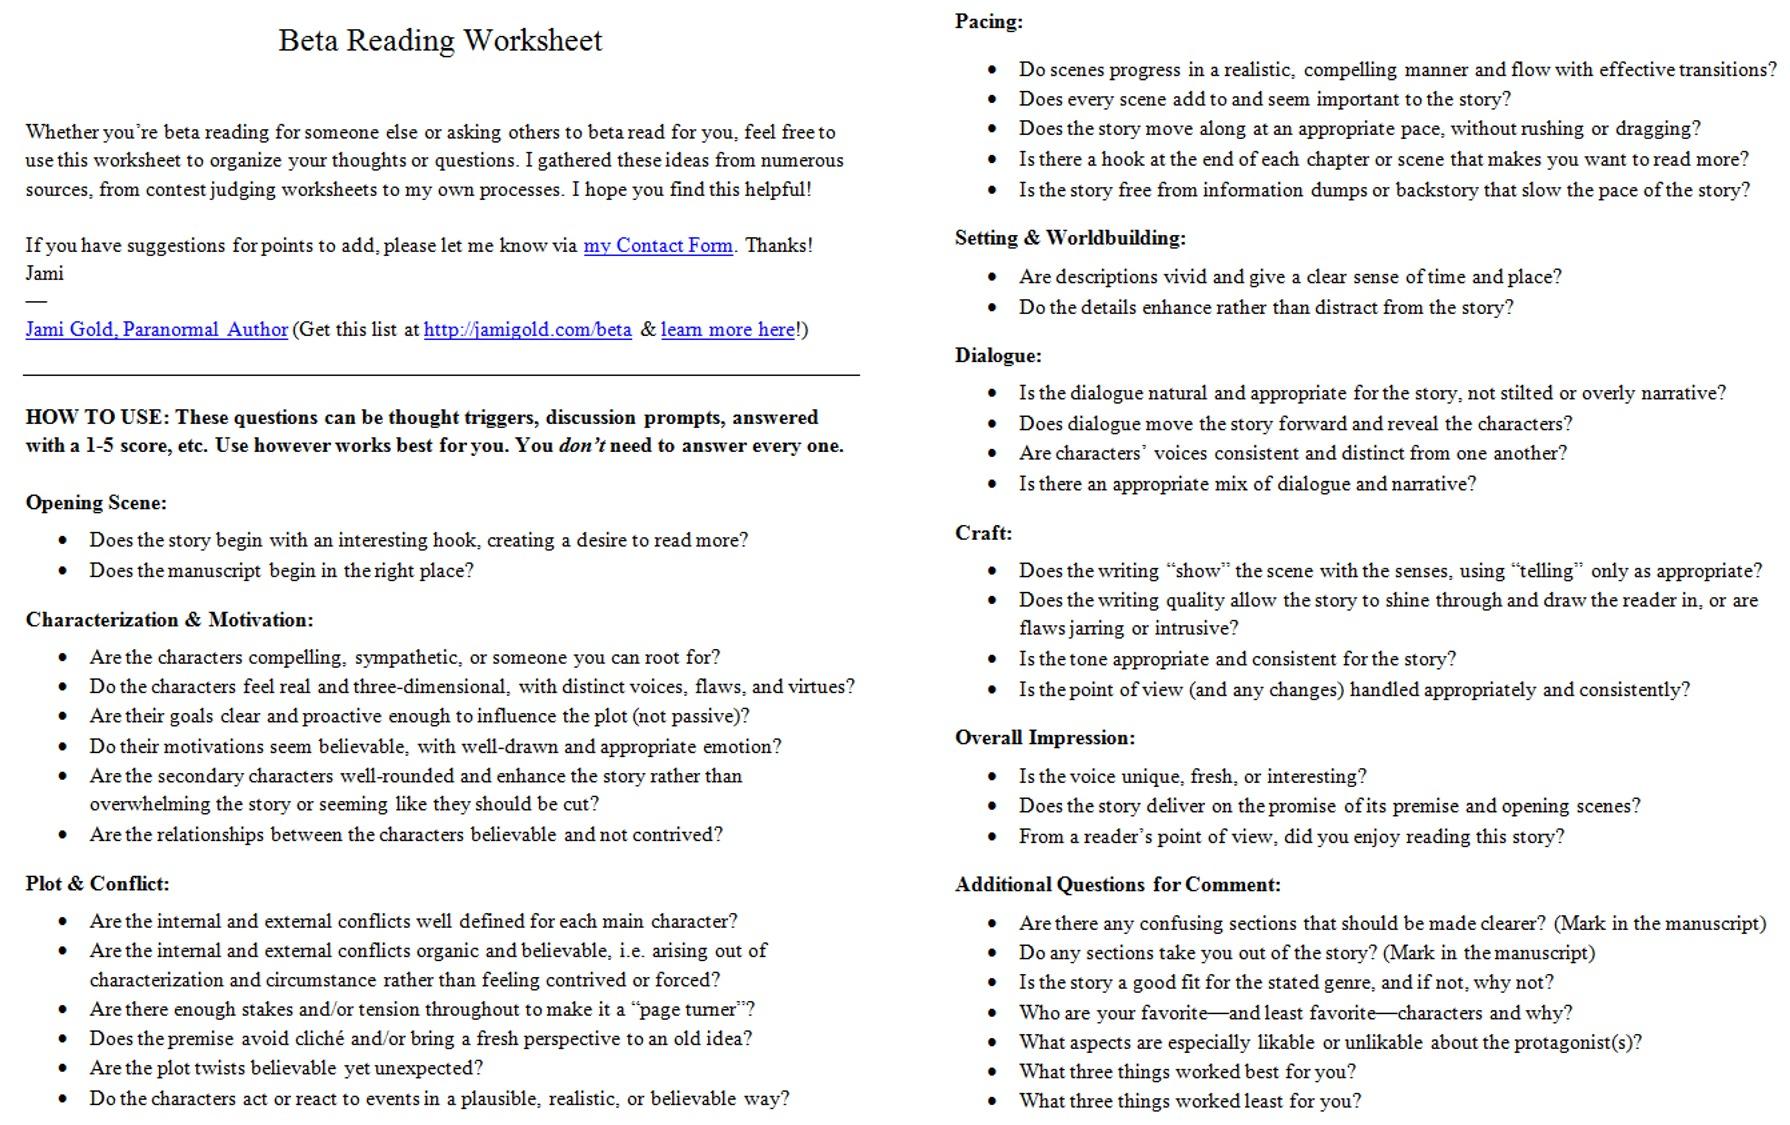 Weirdmailus  Scenic Worksheets For Writers  Jami Gold Paranormal Author With Engaging Screen Shot Of The Twopage Beta Reading Worksheet With Astonishing Lincs Vocabulary Worksheet Also Spanish Classroom Objects Worksheet In Addition Compound Subjects Worksheets And Note Taking Worksheets As Well As Function Tables Input Output Worksheet Additionally Counting On Worksheet From Jamigoldcom With Weirdmailus  Engaging Worksheets For Writers  Jami Gold Paranormal Author With Astonishing Screen Shot Of The Twopage Beta Reading Worksheet And Scenic Lincs Vocabulary Worksheet Also Spanish Classroom Objects Worksheet In Addition Compound Subjects Worksheets From Jamigoldcom